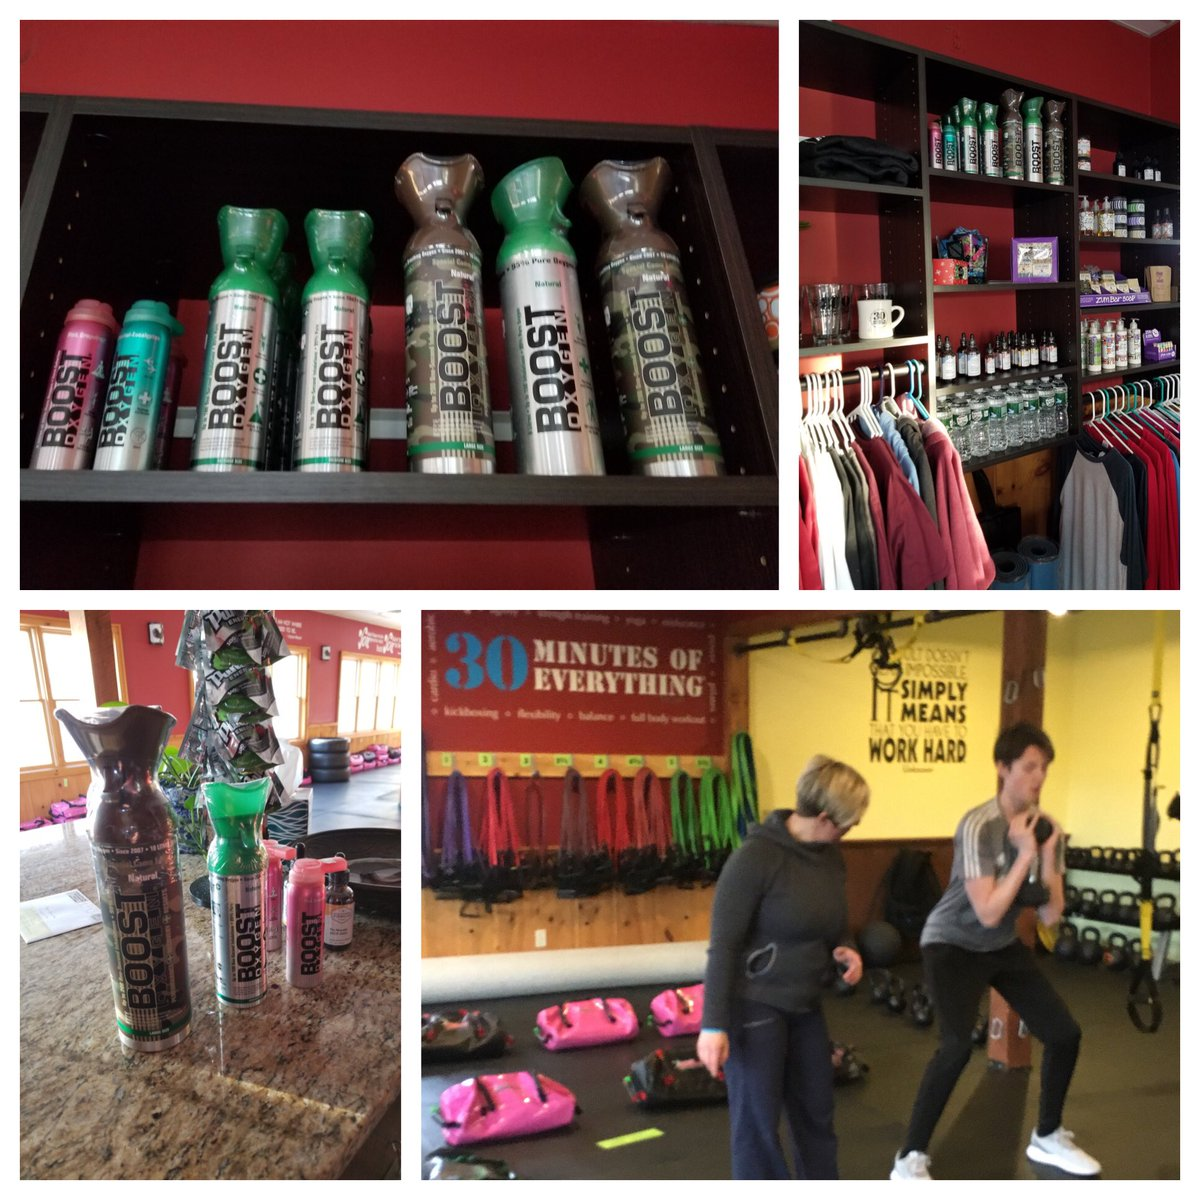 Are you supporting your level of fitness activity and recovery with Boost? You can.  If you are looking for online videos for building at-home, real-life functional strength, visit http://30minutesofeverything.com    #BoostOxygen  @tanya30MoEpic.twitter.com/TFckuzsNM5